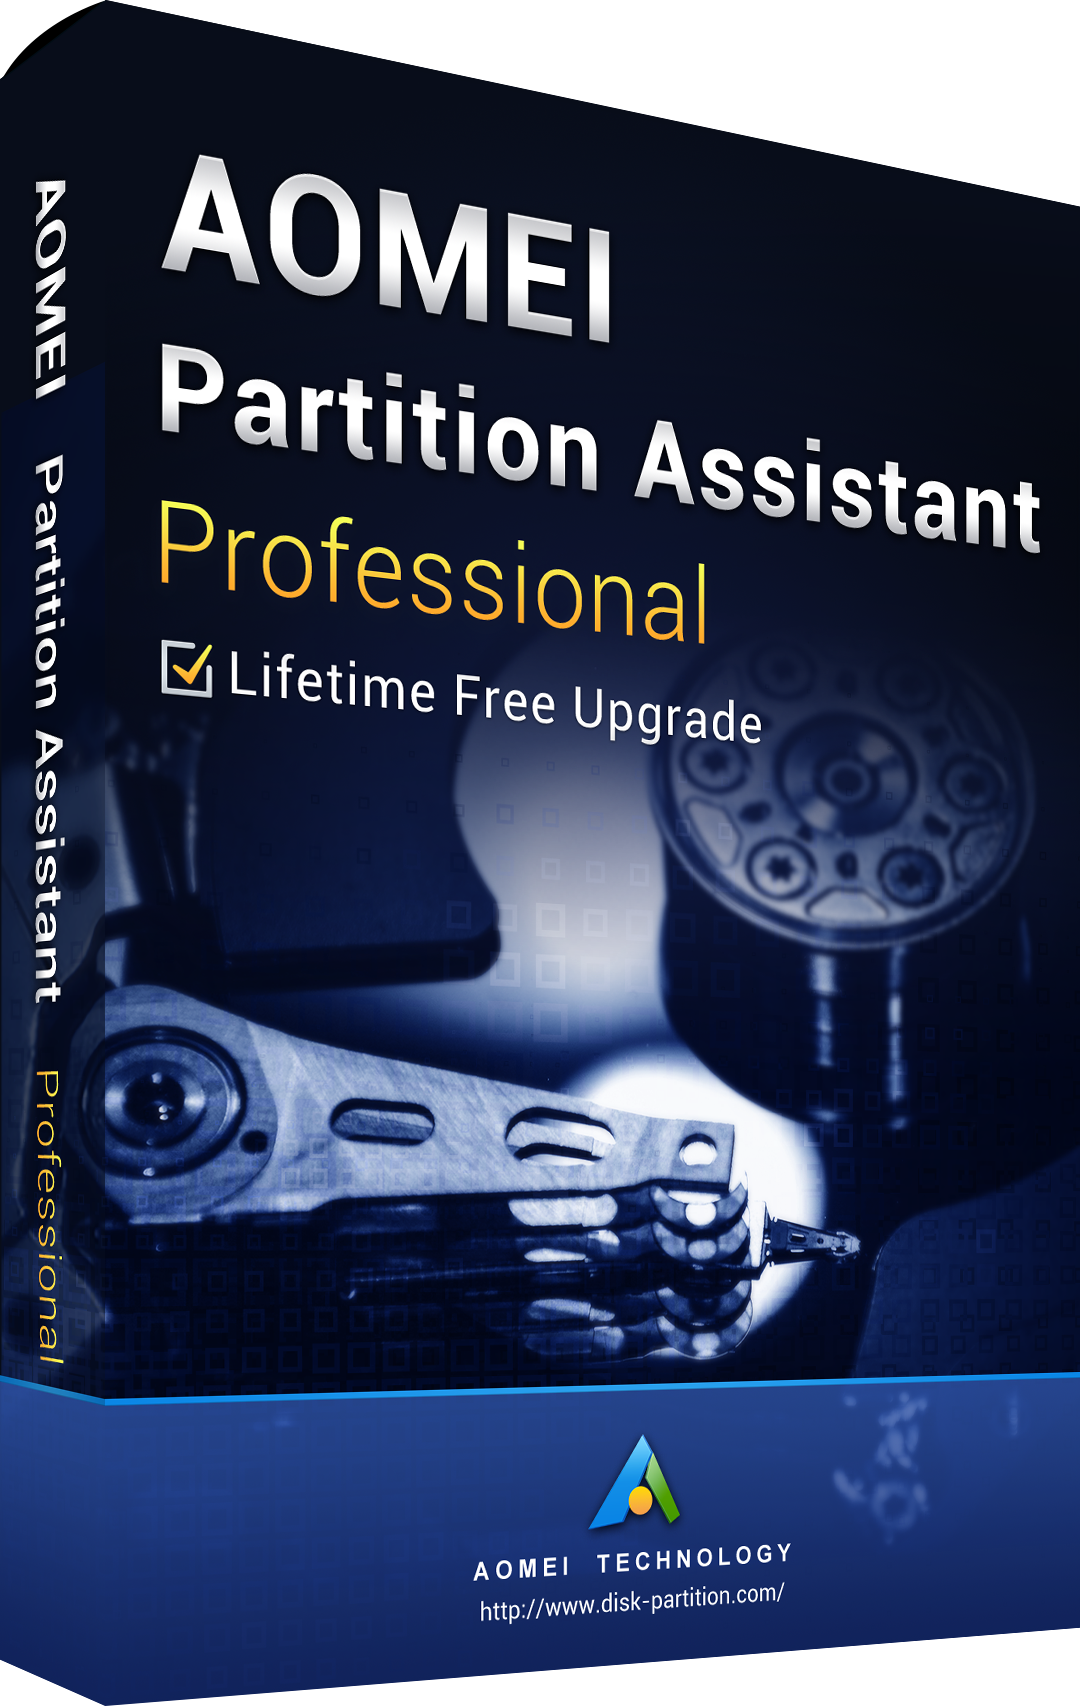 AOMEI Partition Assistant Professional + Free Lifetime Upgrades 8.0 Edition Key Global